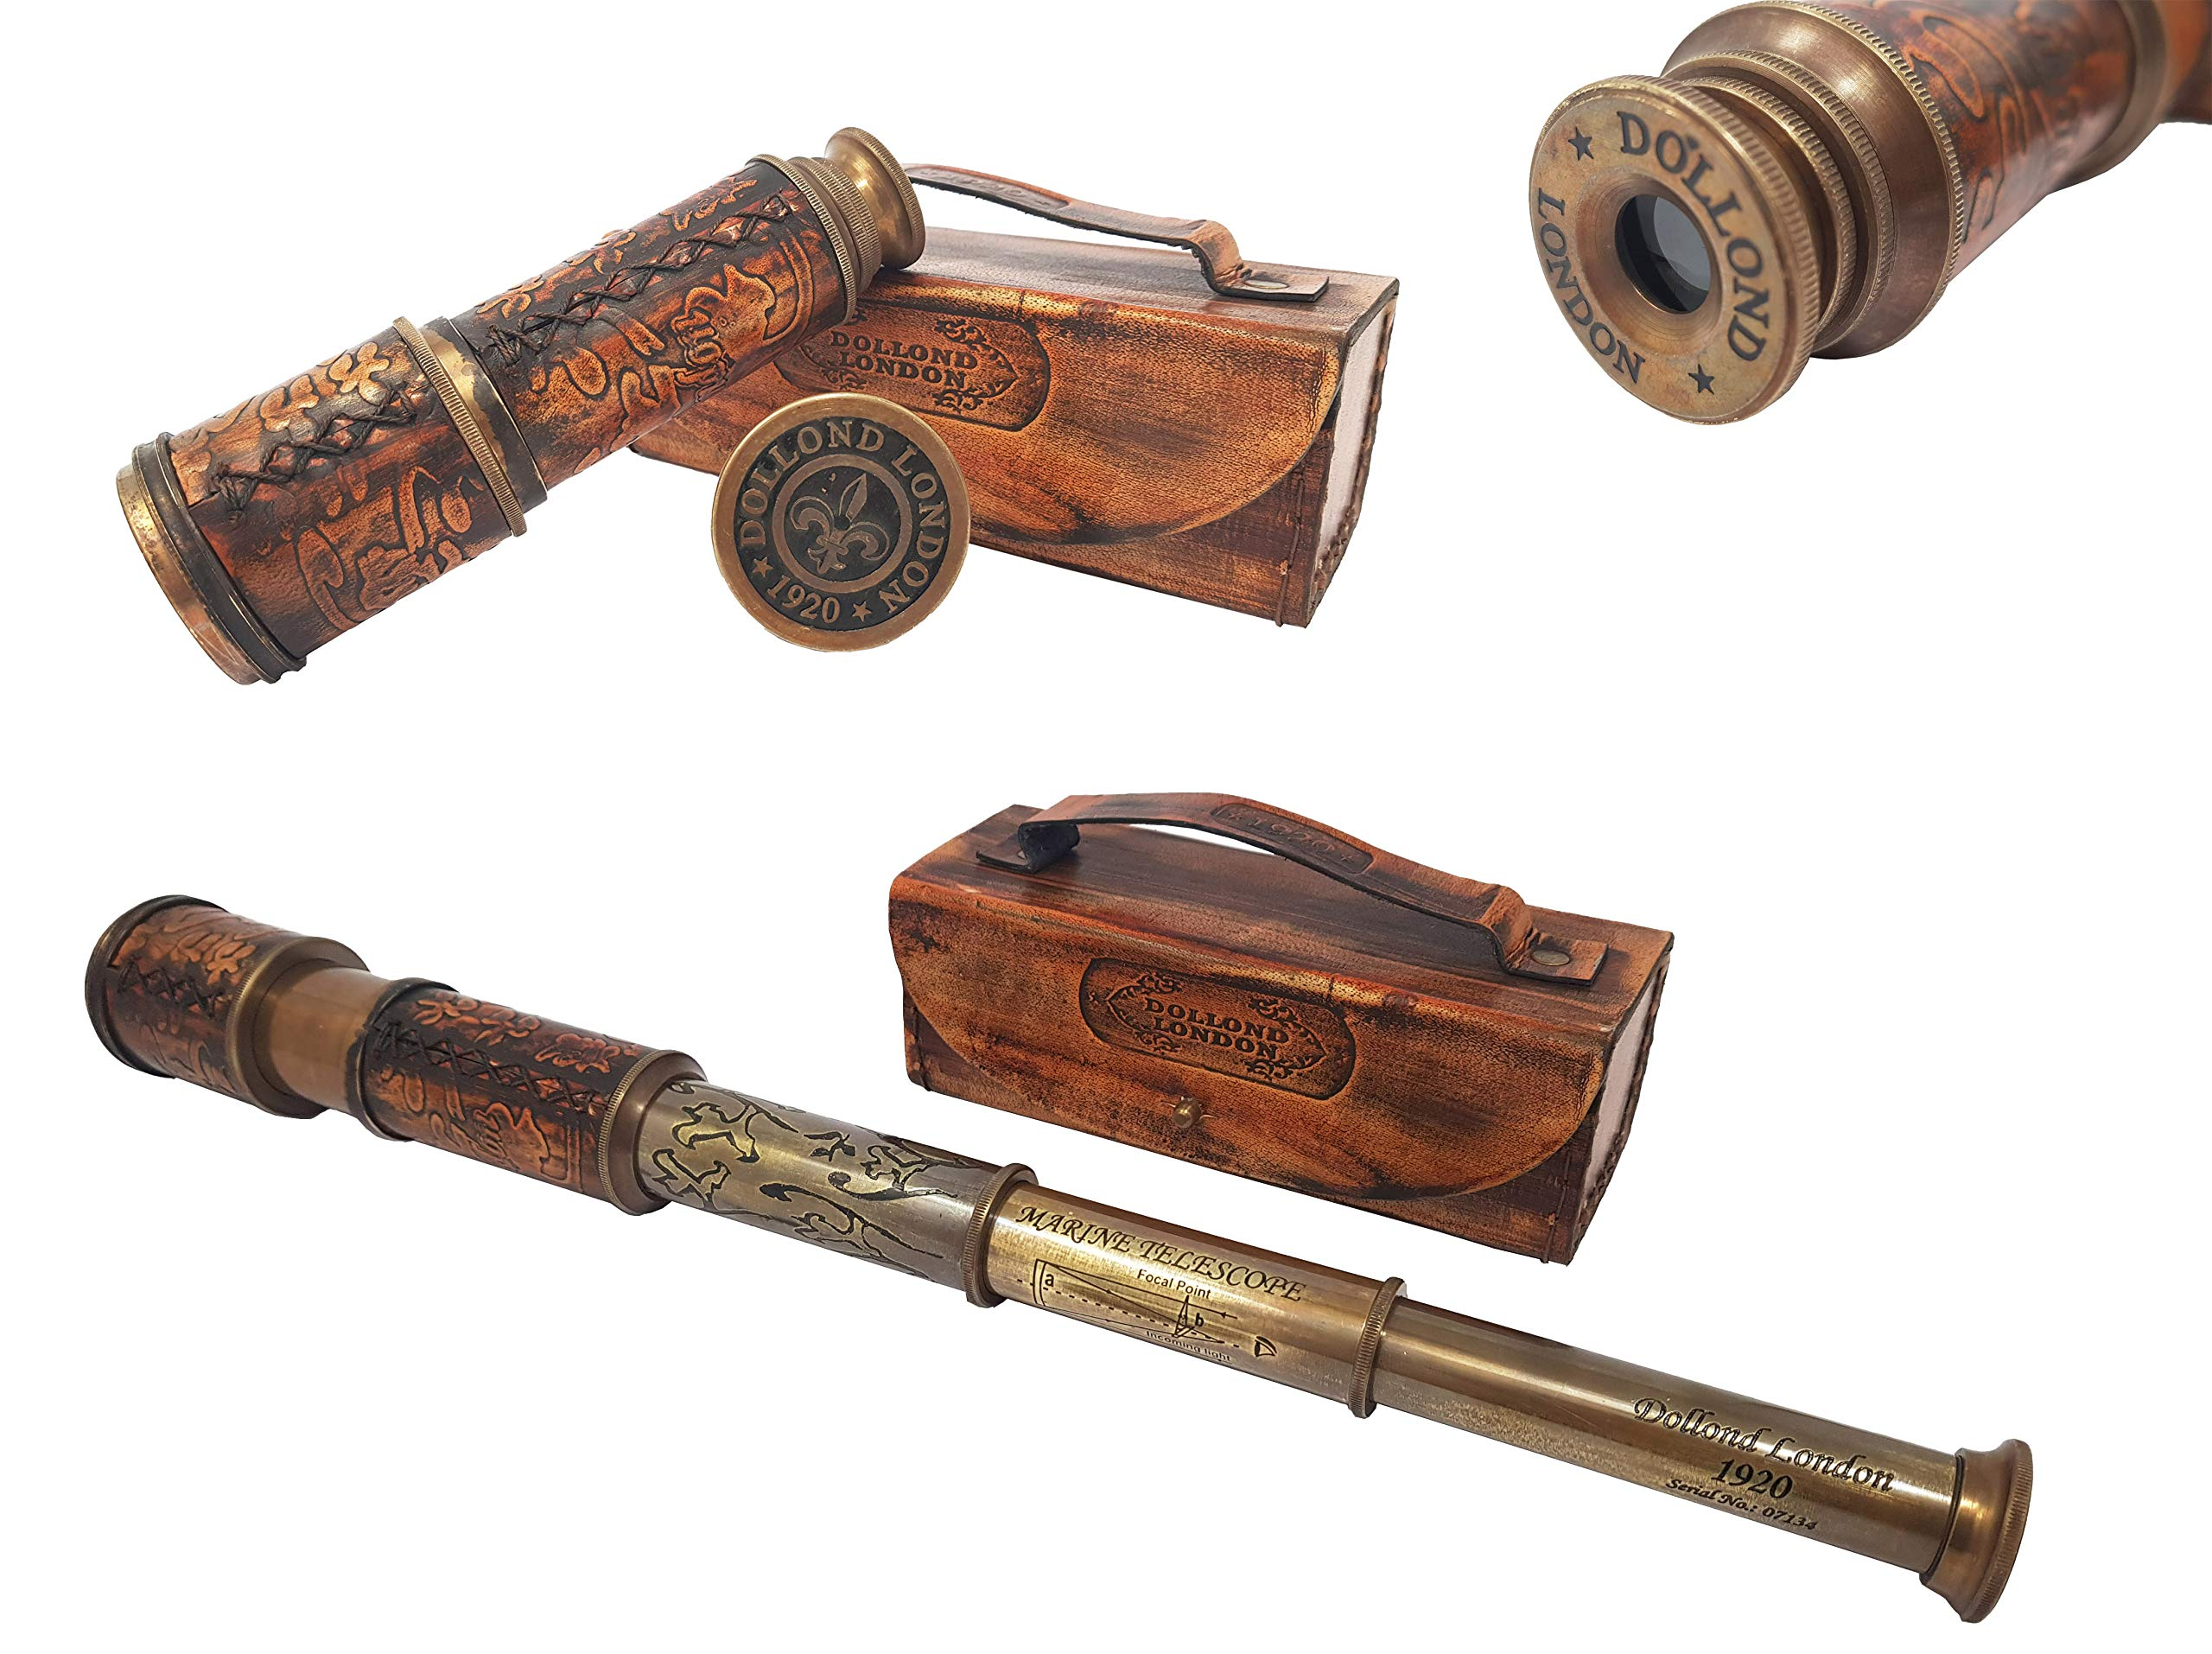 Brass Nautical - Antique Working Telescope / Spyglass Replica in Leather Box, with Glass Optics, Extendable to 14 inches, Made of Pure Brass, Decorative Kids Scope